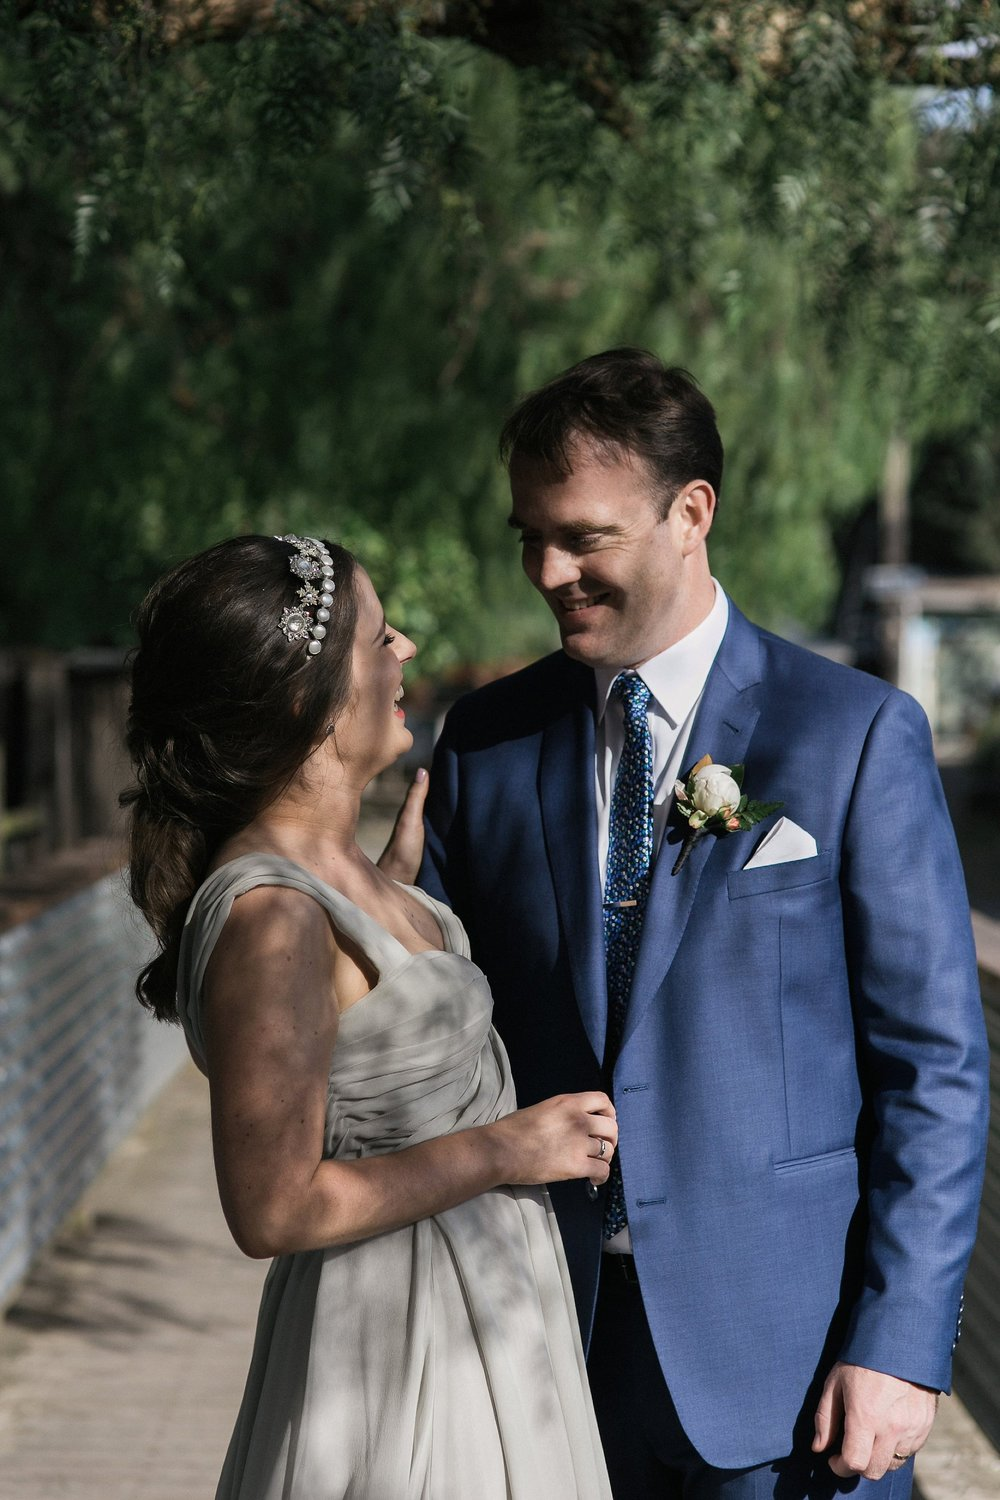 melbourne_wedding_photography_0114.jpg